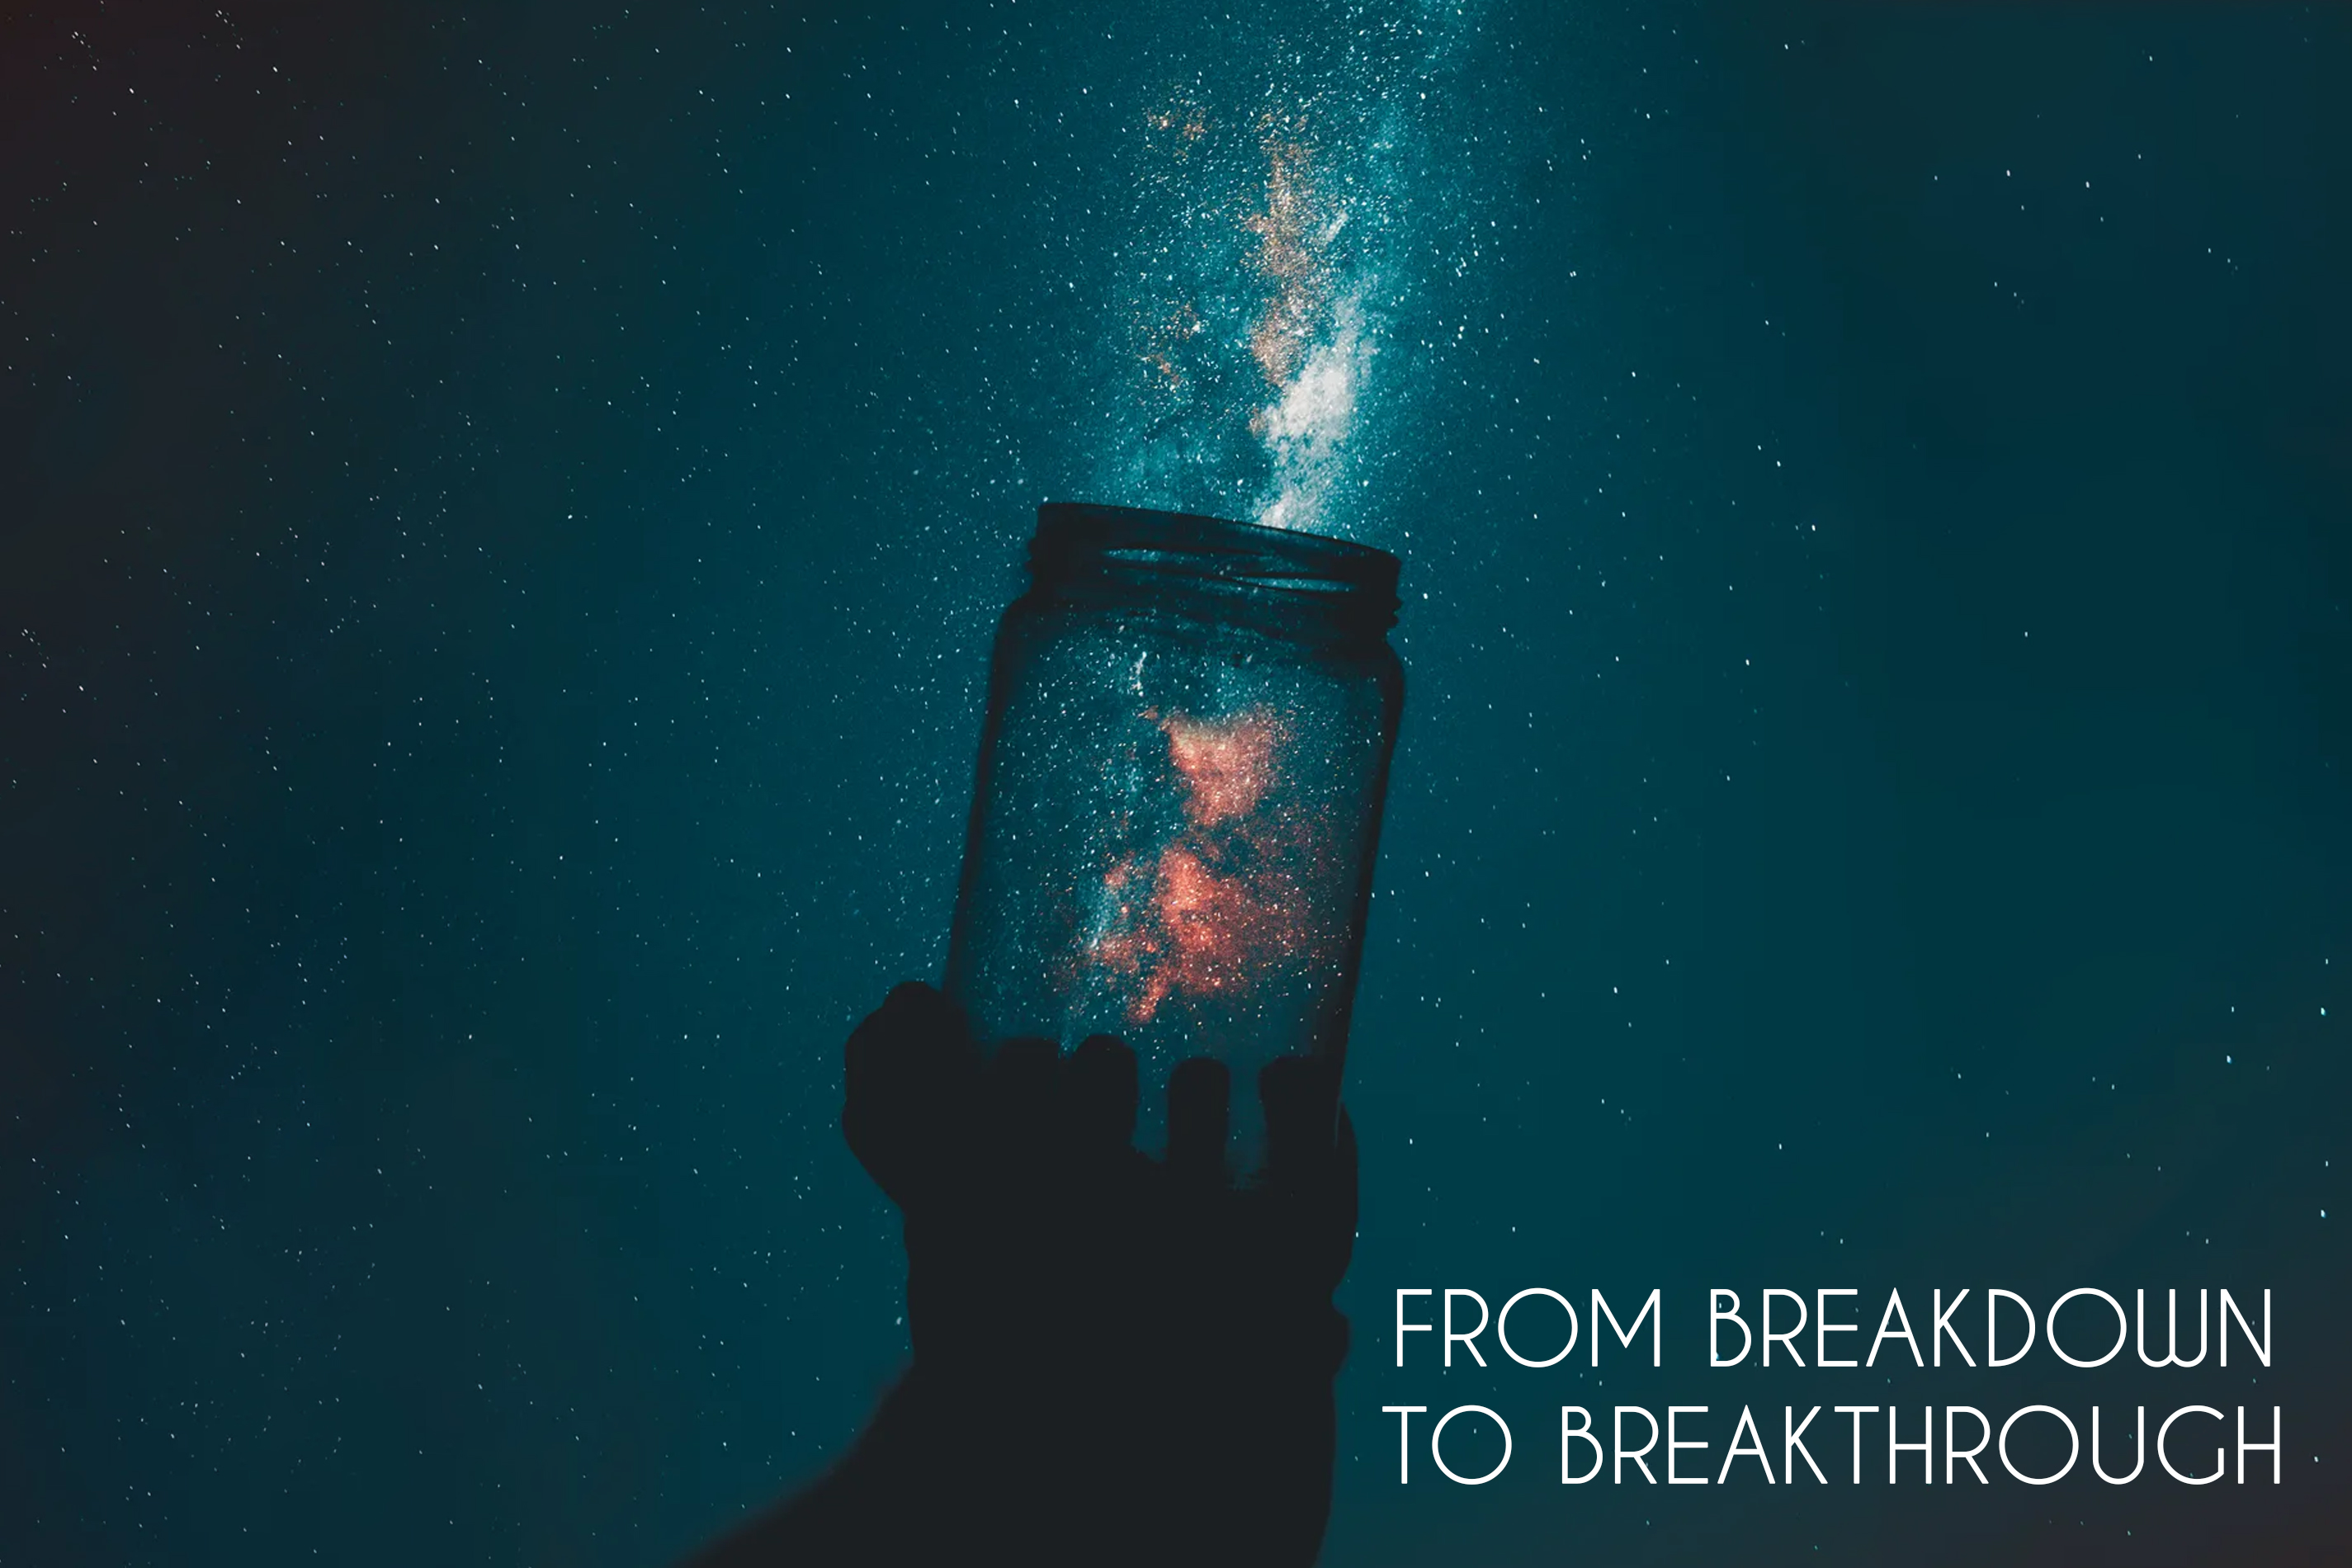 FROM BREAKDOWN TO BREAKTHROUGH - Swami sukhabodhananda